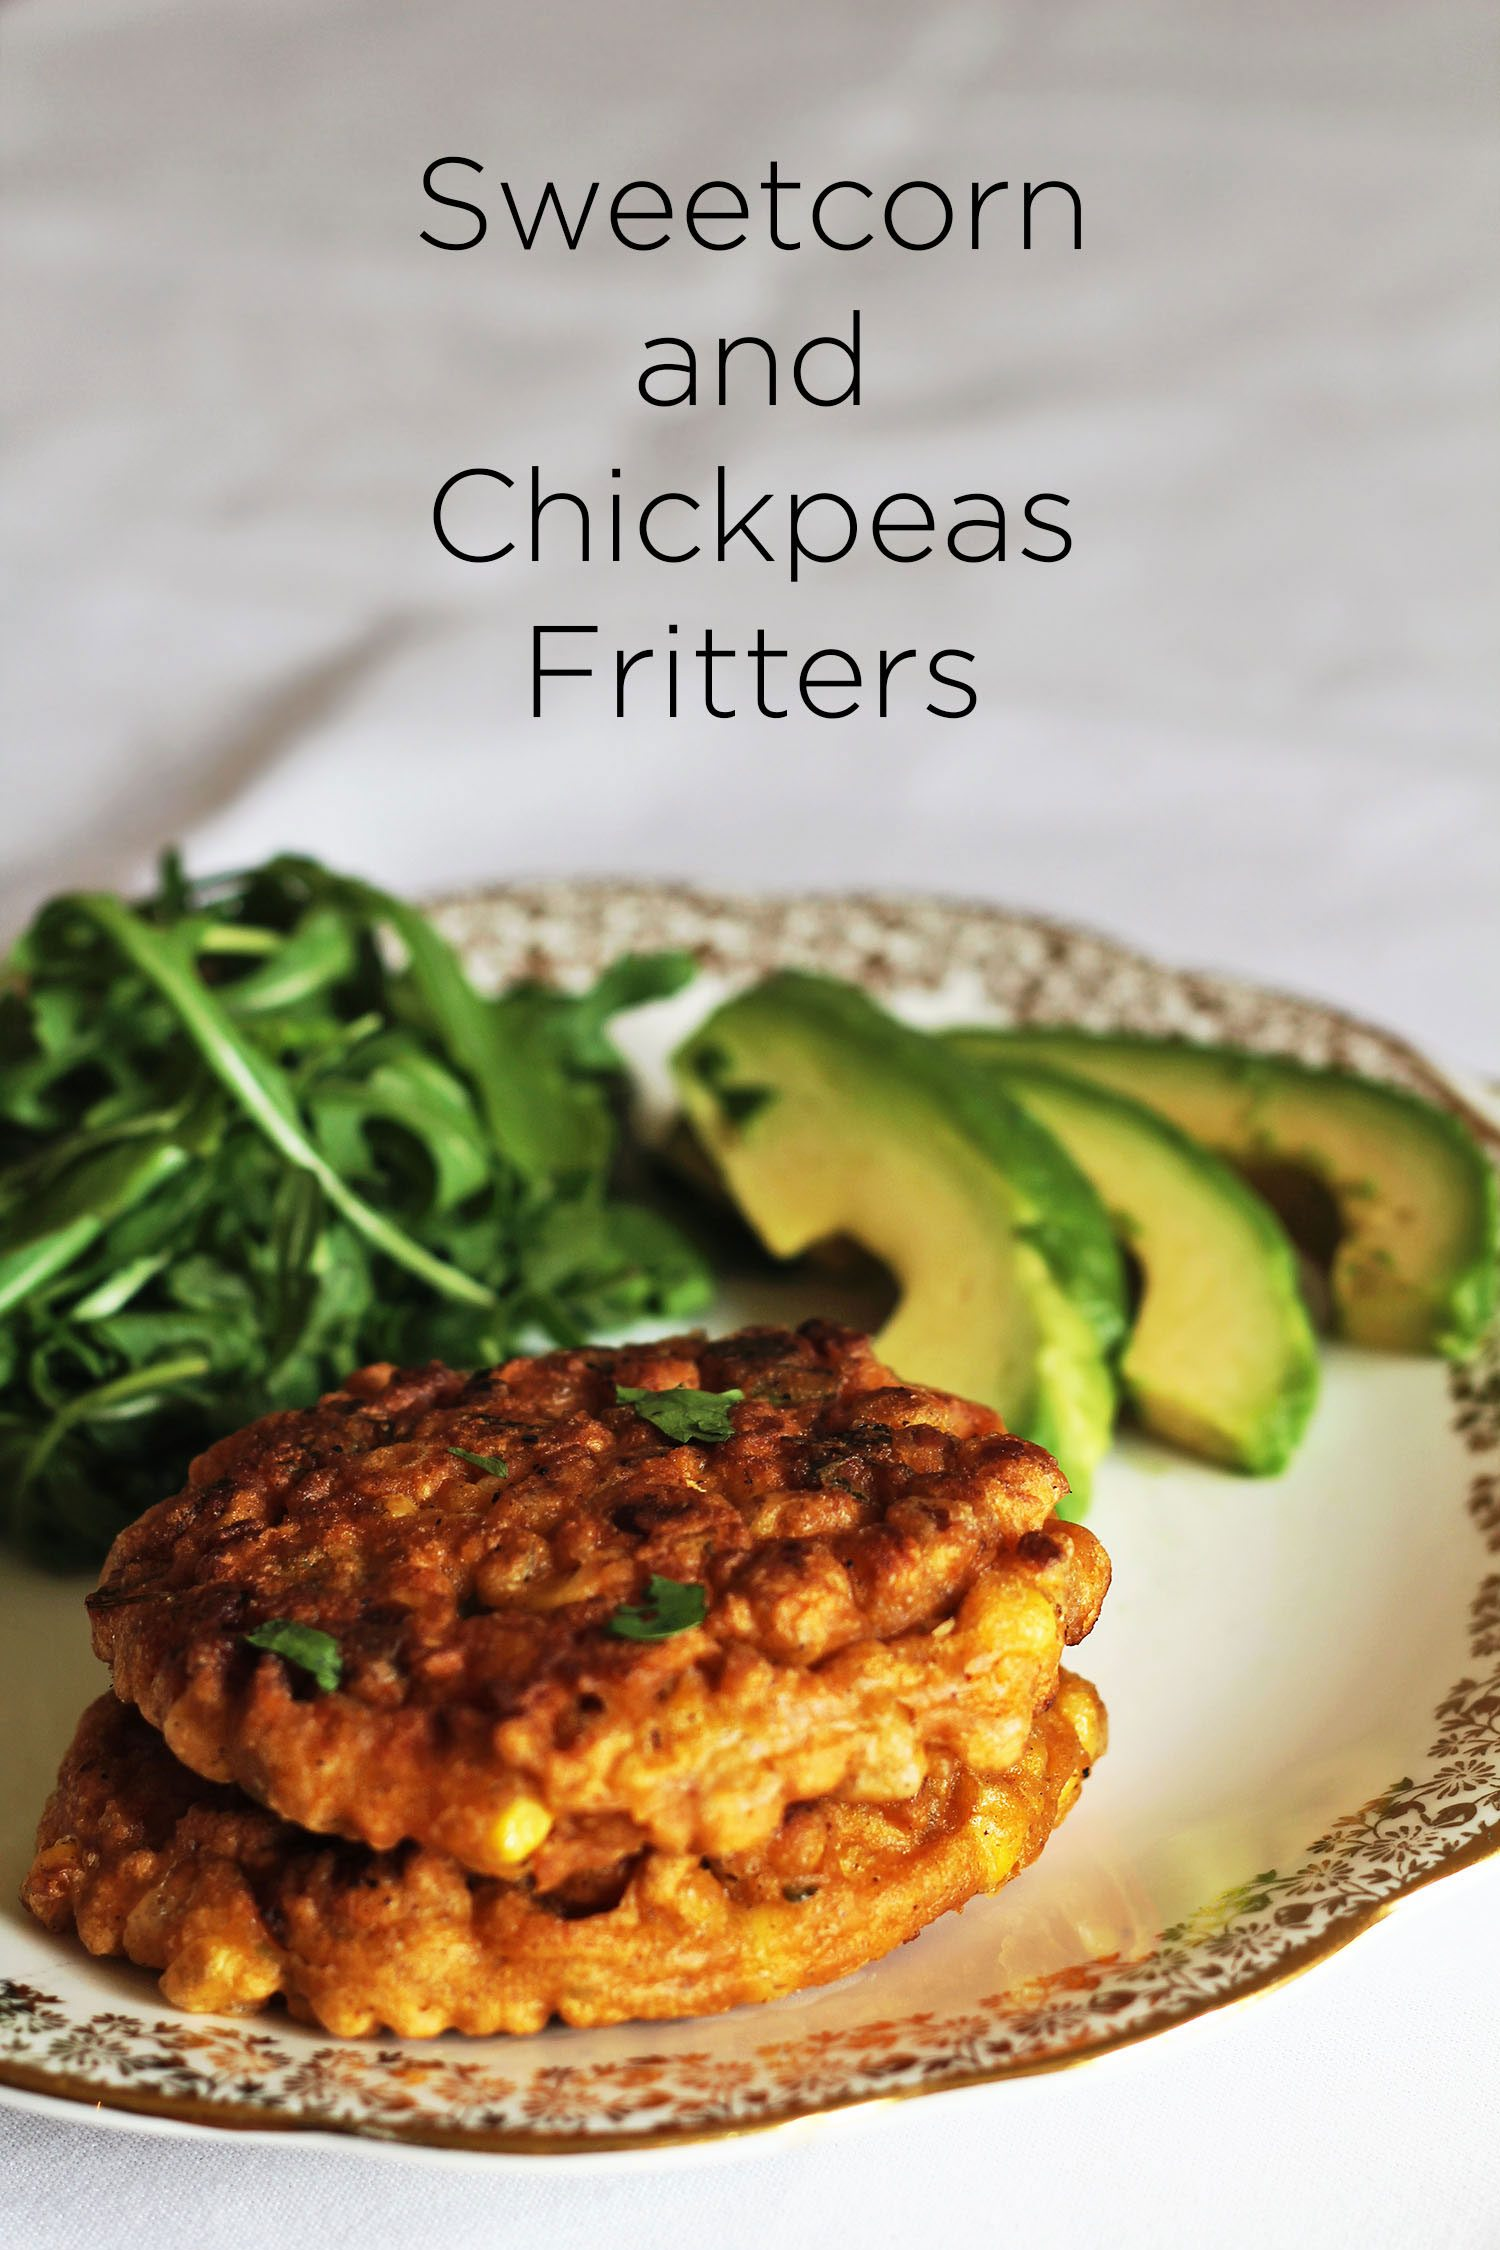 Recipe-for-Sweetcorn-and-Chickpeas-Fritters